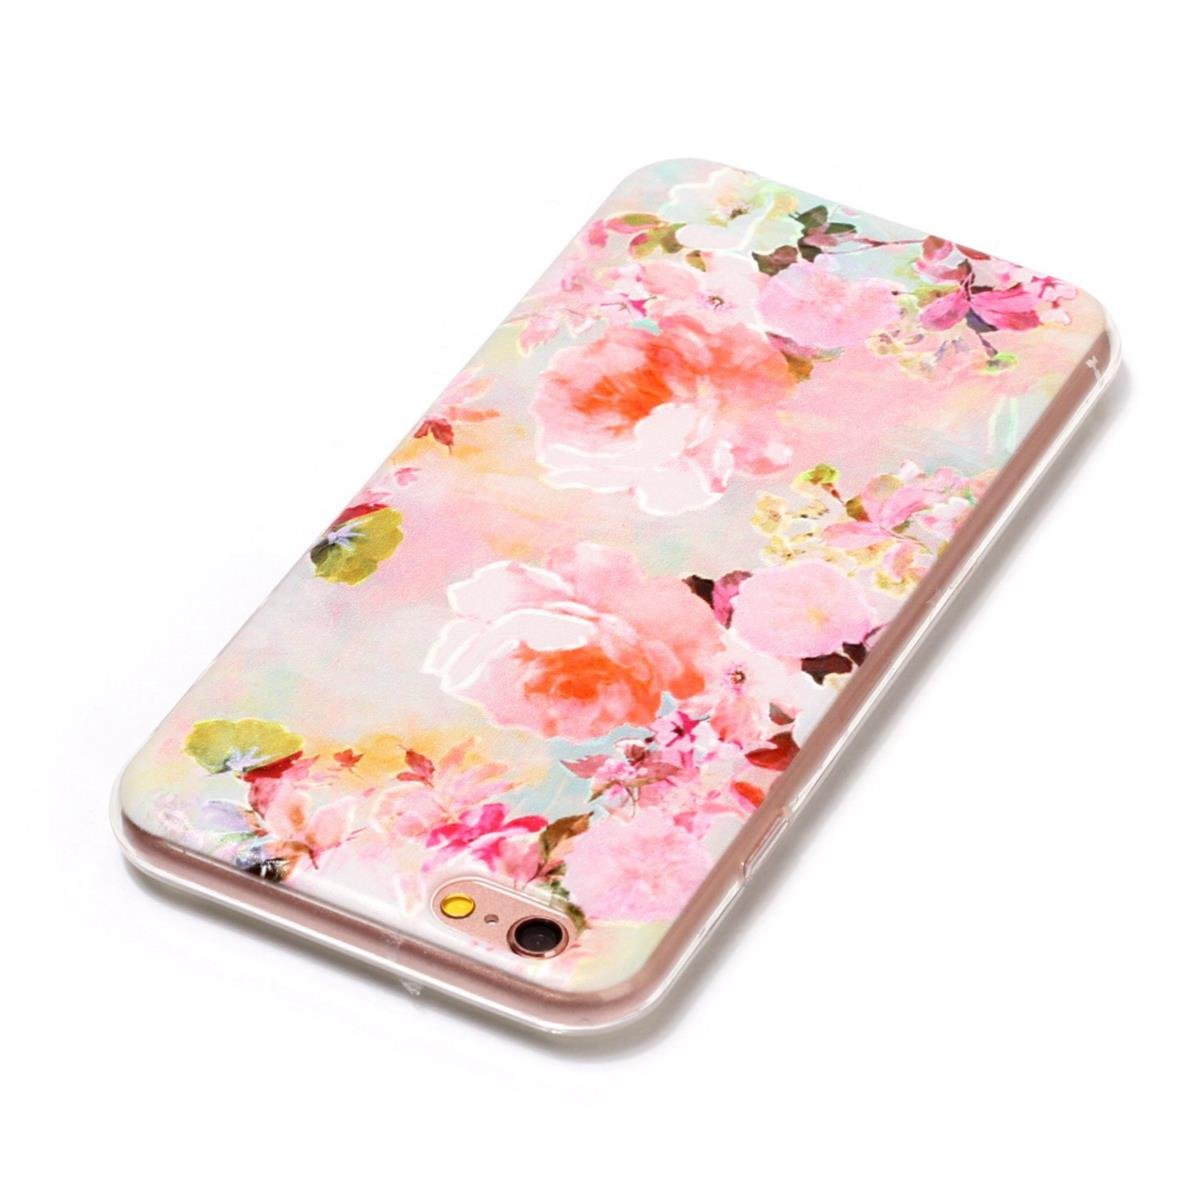 Iphone SE Phone Case Cover Iphone 5 5S Case Metter Embossed Blue Butterfly Pattern Ultra Light Soft Jelly Clear Gel TPU Silicone Shockproof Phone Case Protective Back Cover for iphone